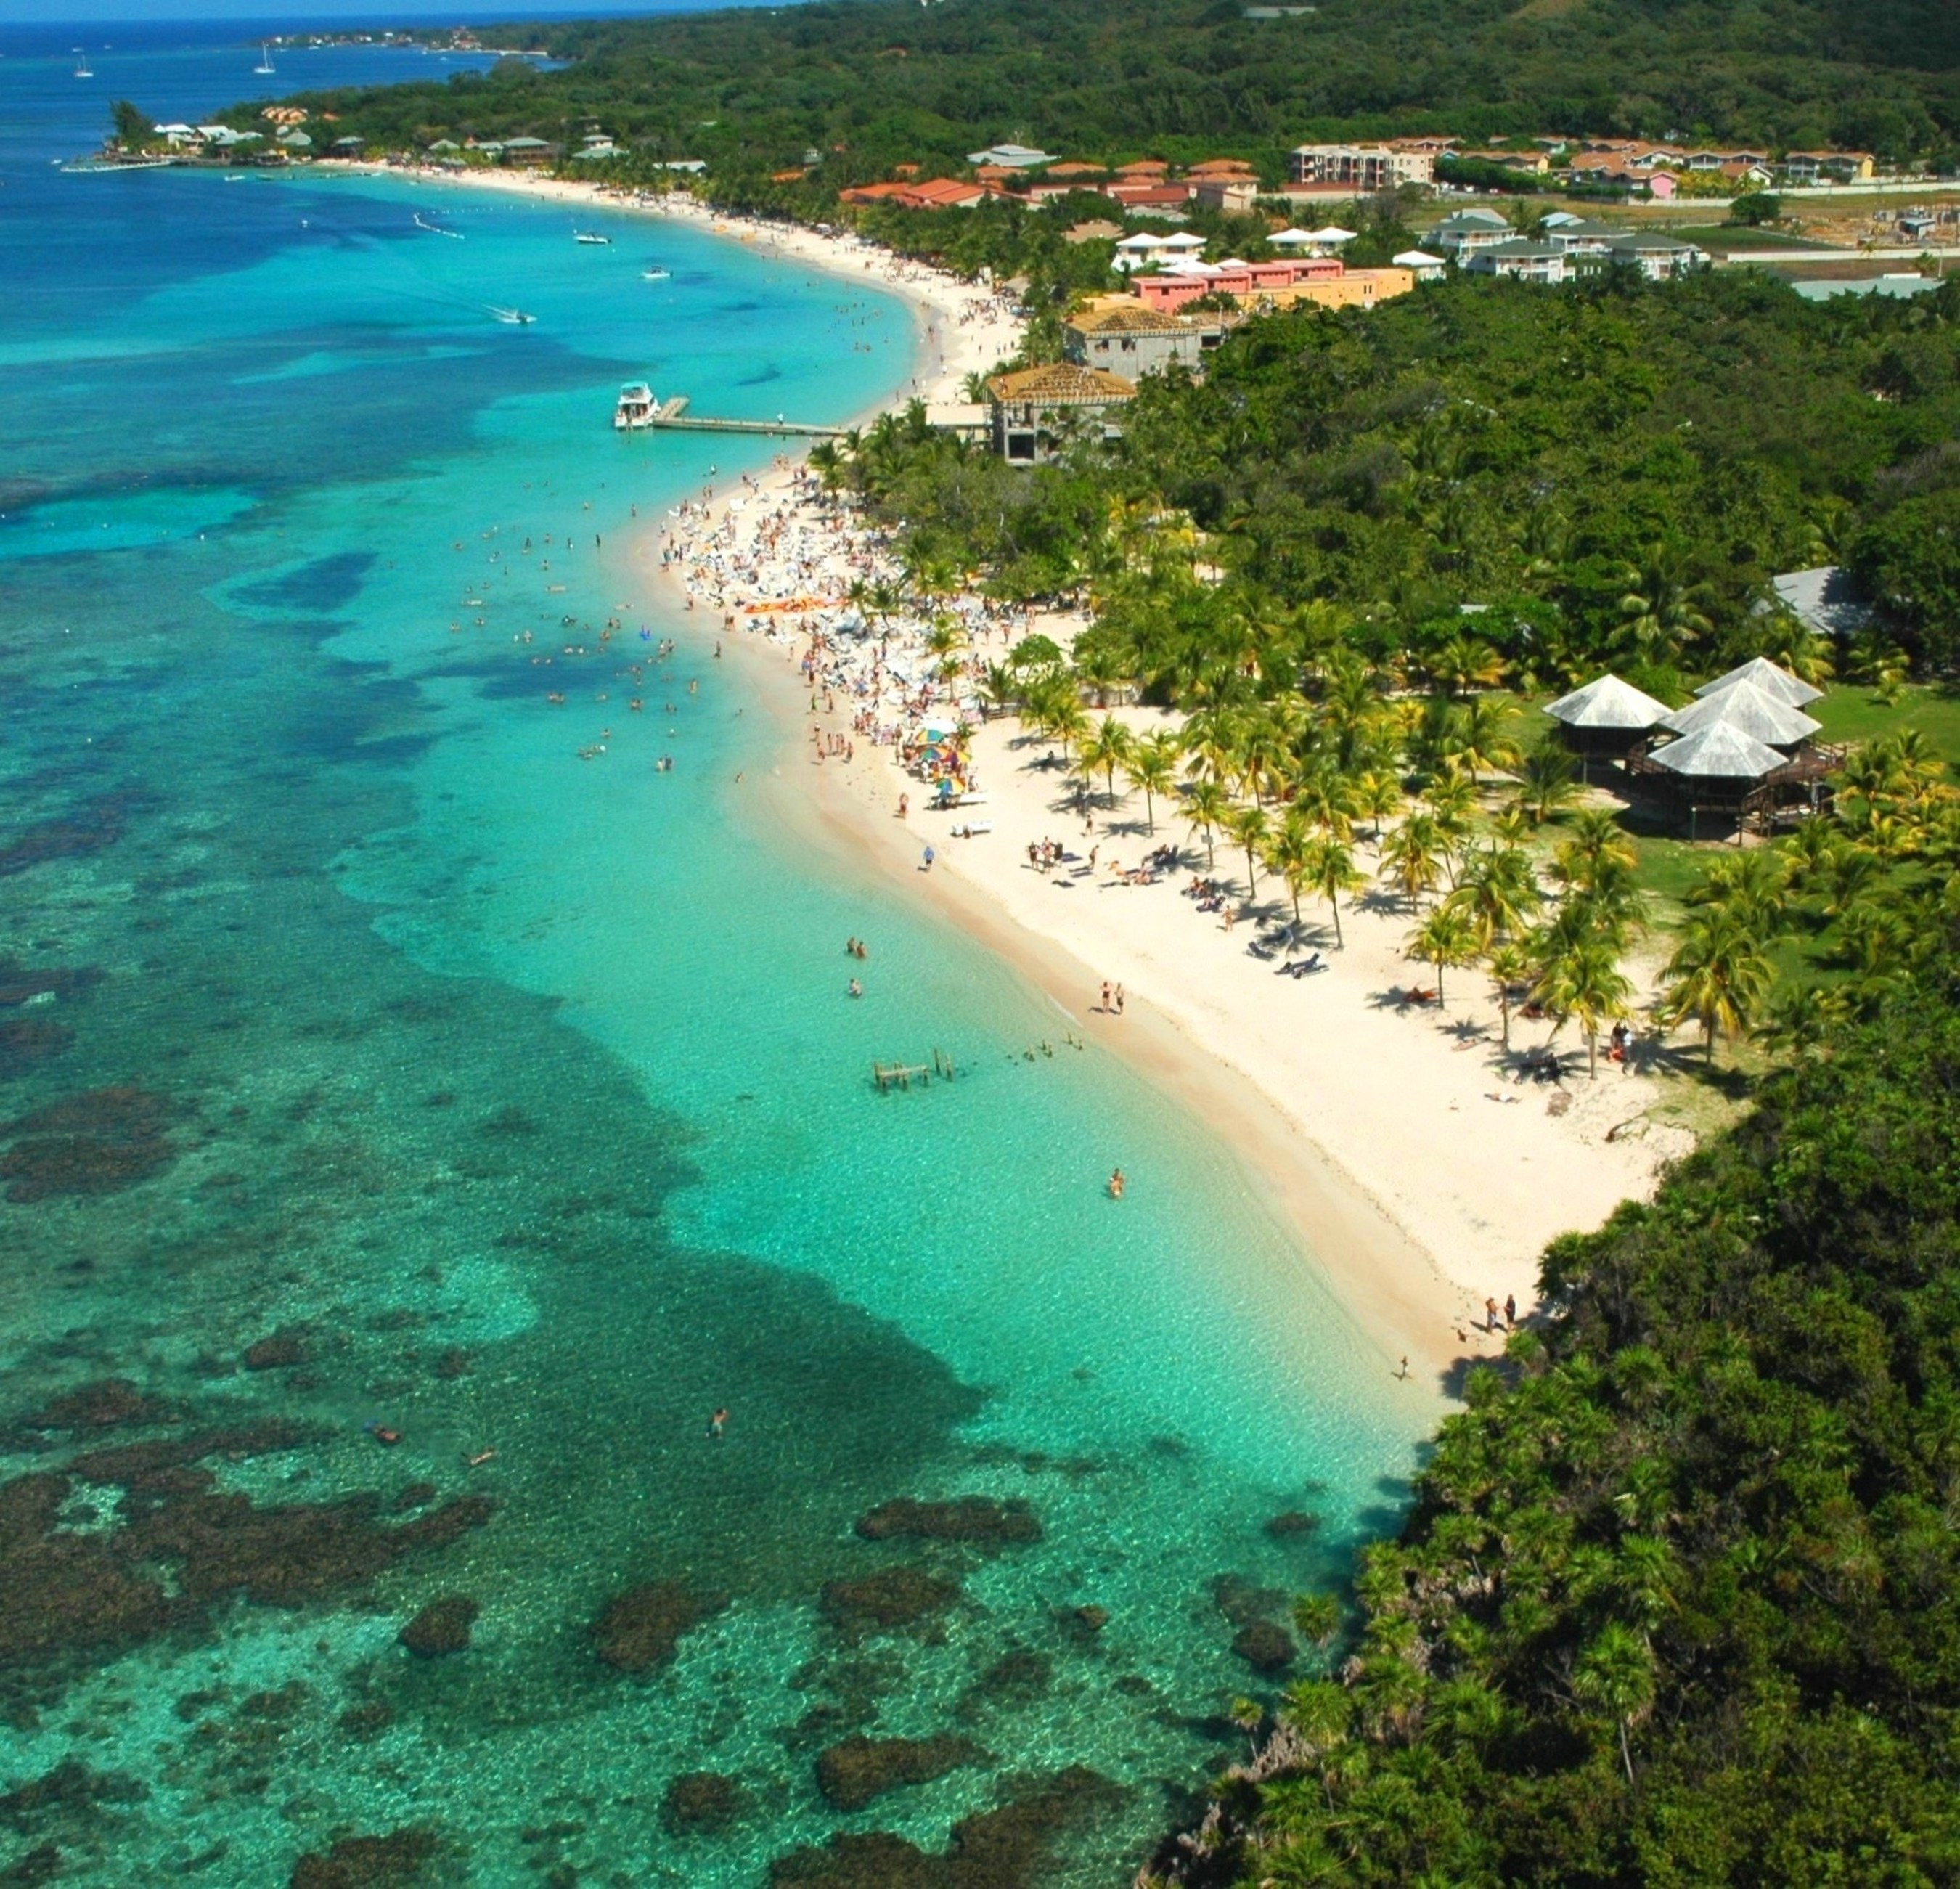 A view of Honduras' West Bay Beach, selected by TripAdvisor's users as the best beach in Central America and among the 10 best beaches in the world.